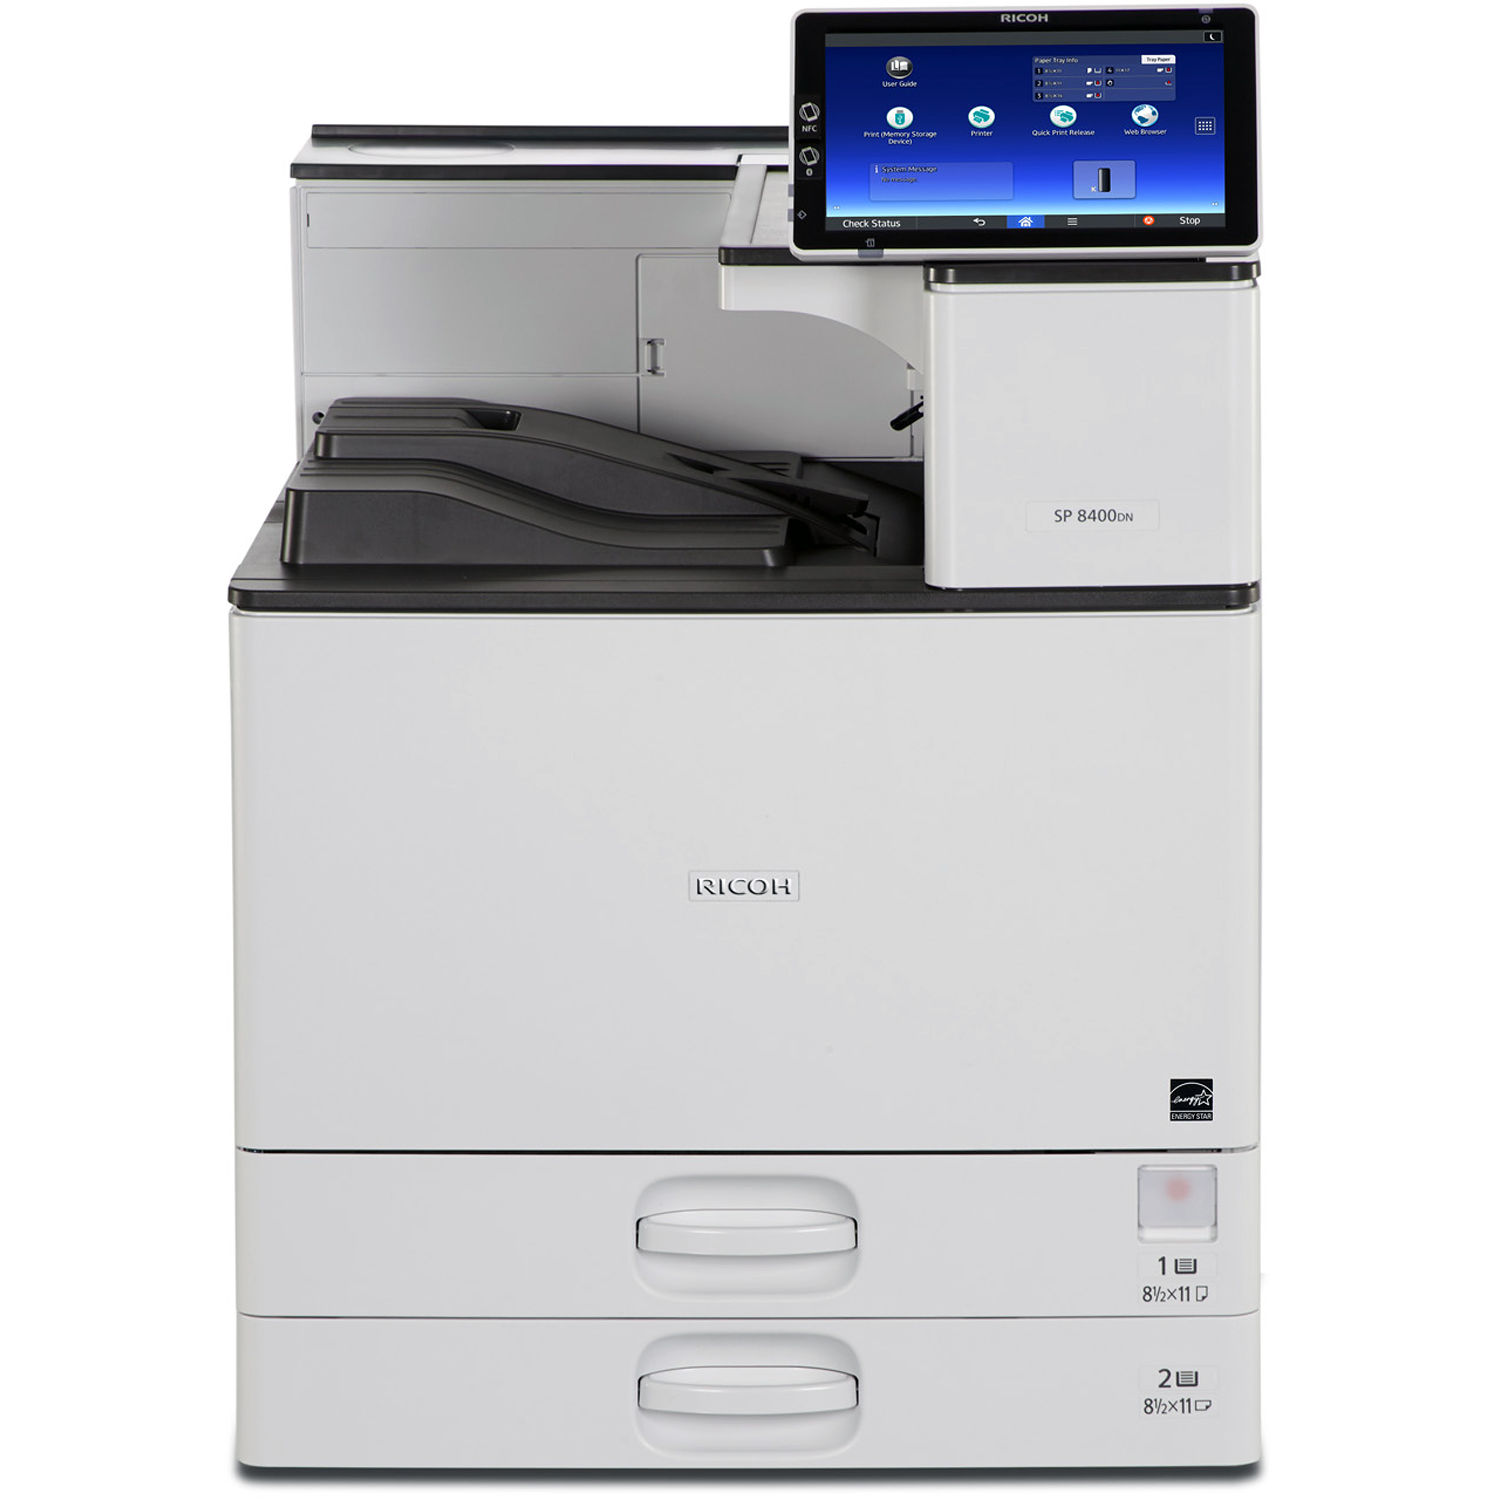 SONY VAIO VPCF127FXH RICOH MEMORY CONTROLLER WINDOWS 7 DRIVERS DOWNLOAD (2019)